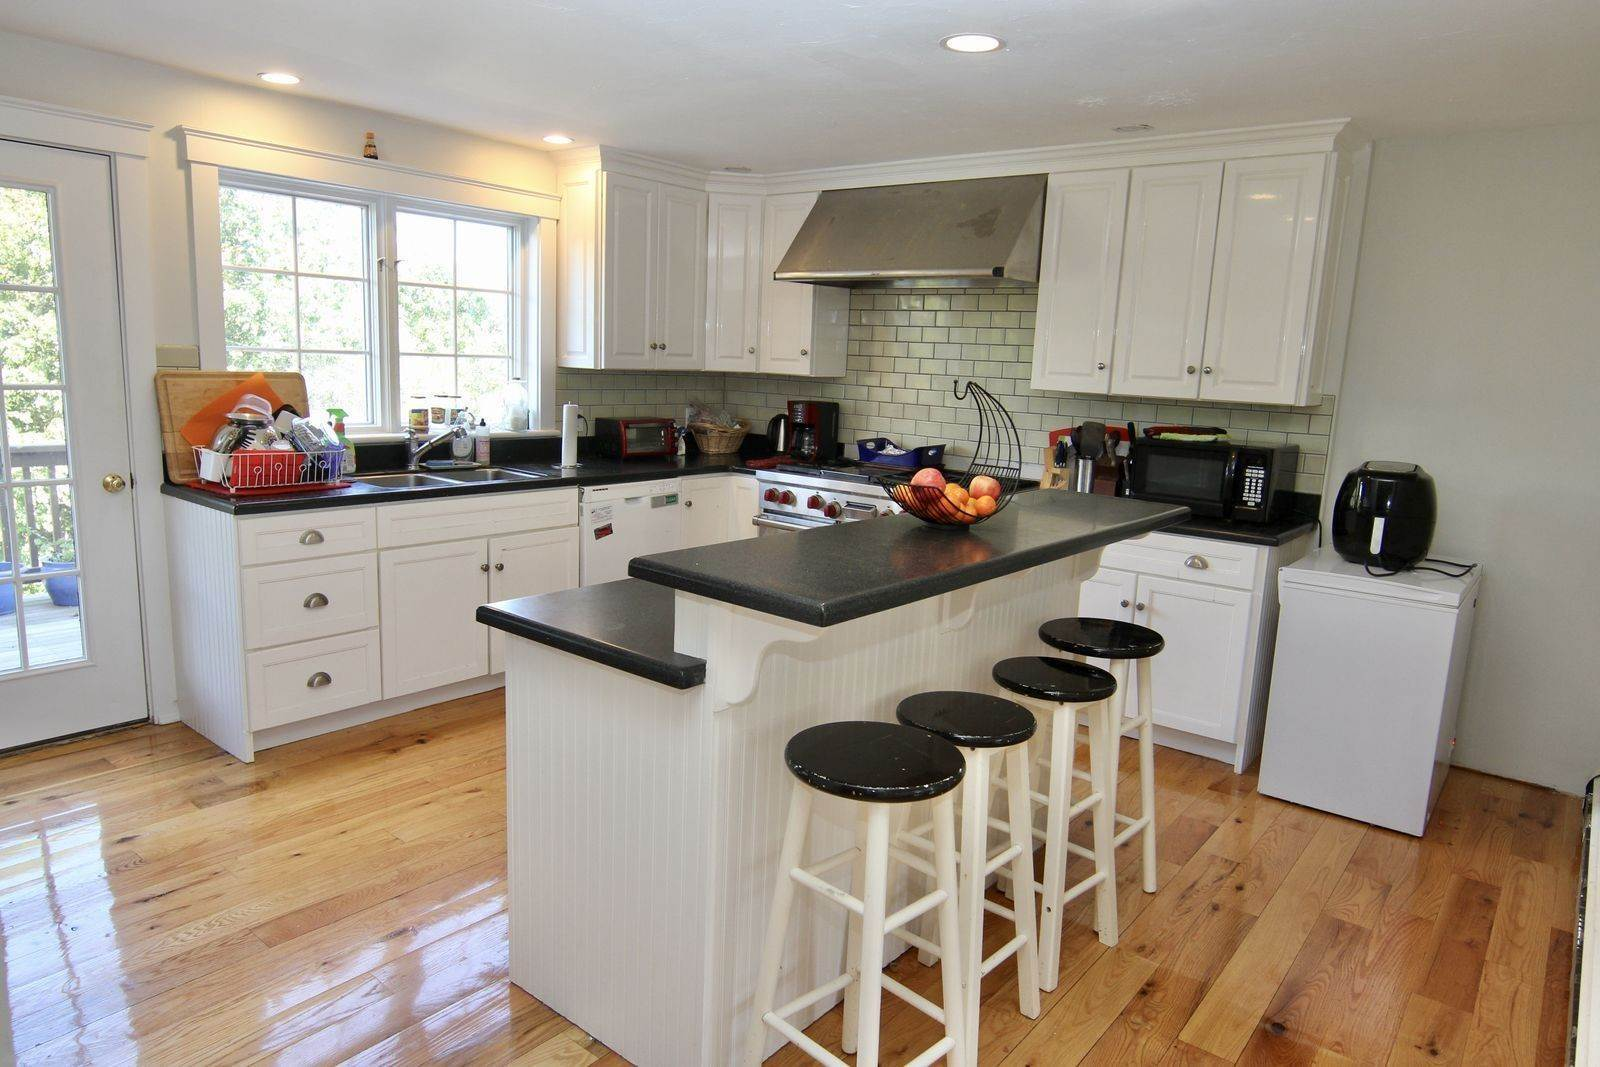 6. Single Family Home for Sale at 81 12th Street North, Edgartown, Massachusetts,02539 United States